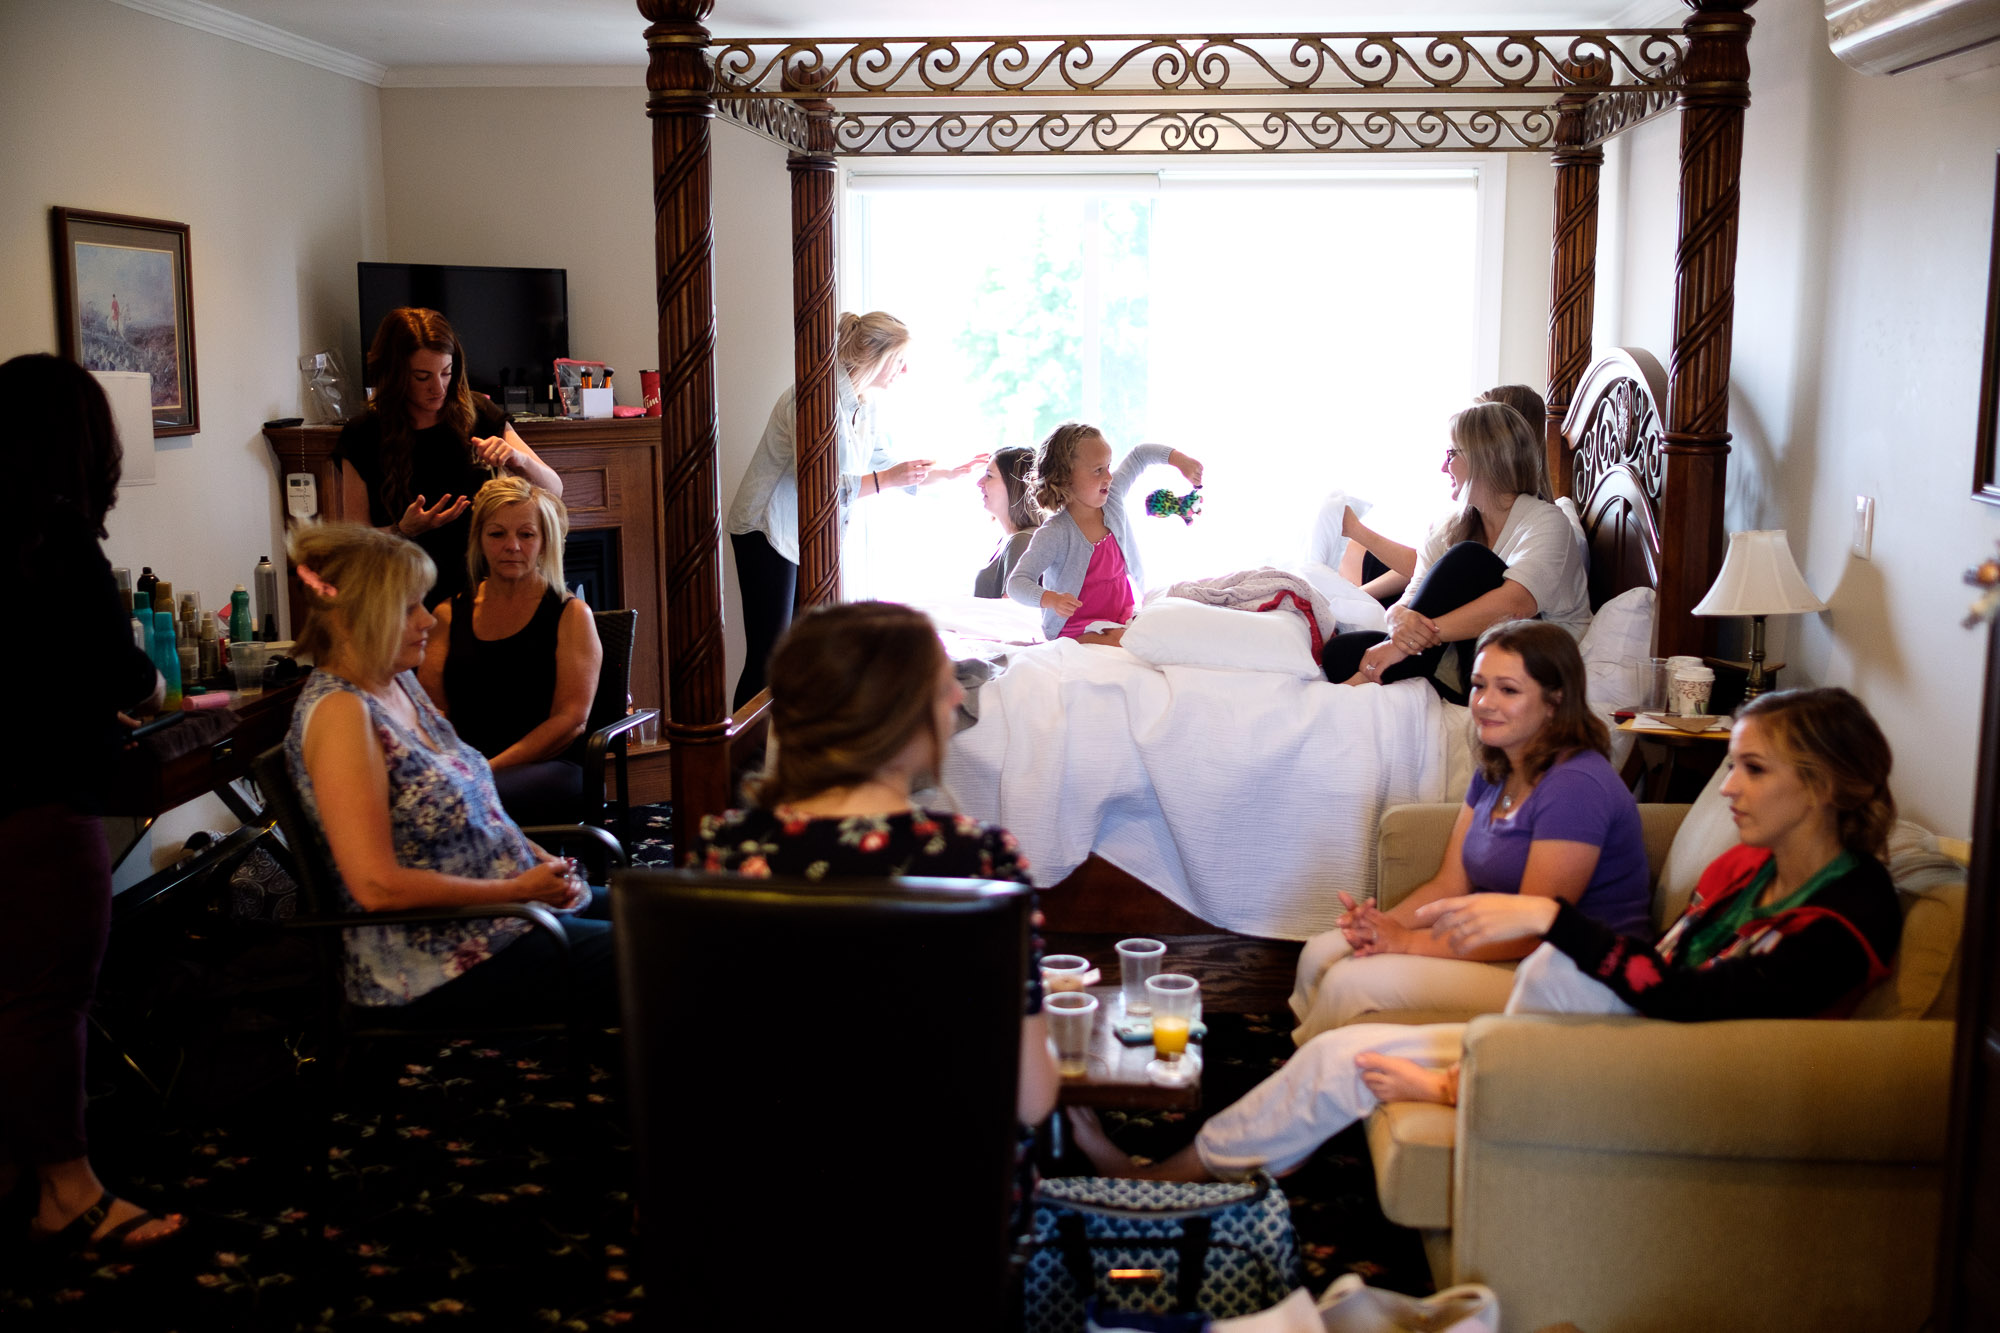 A crowded room as the girls get ready in a suite at the Hessenland Inn for Alex + Colton's wedding.